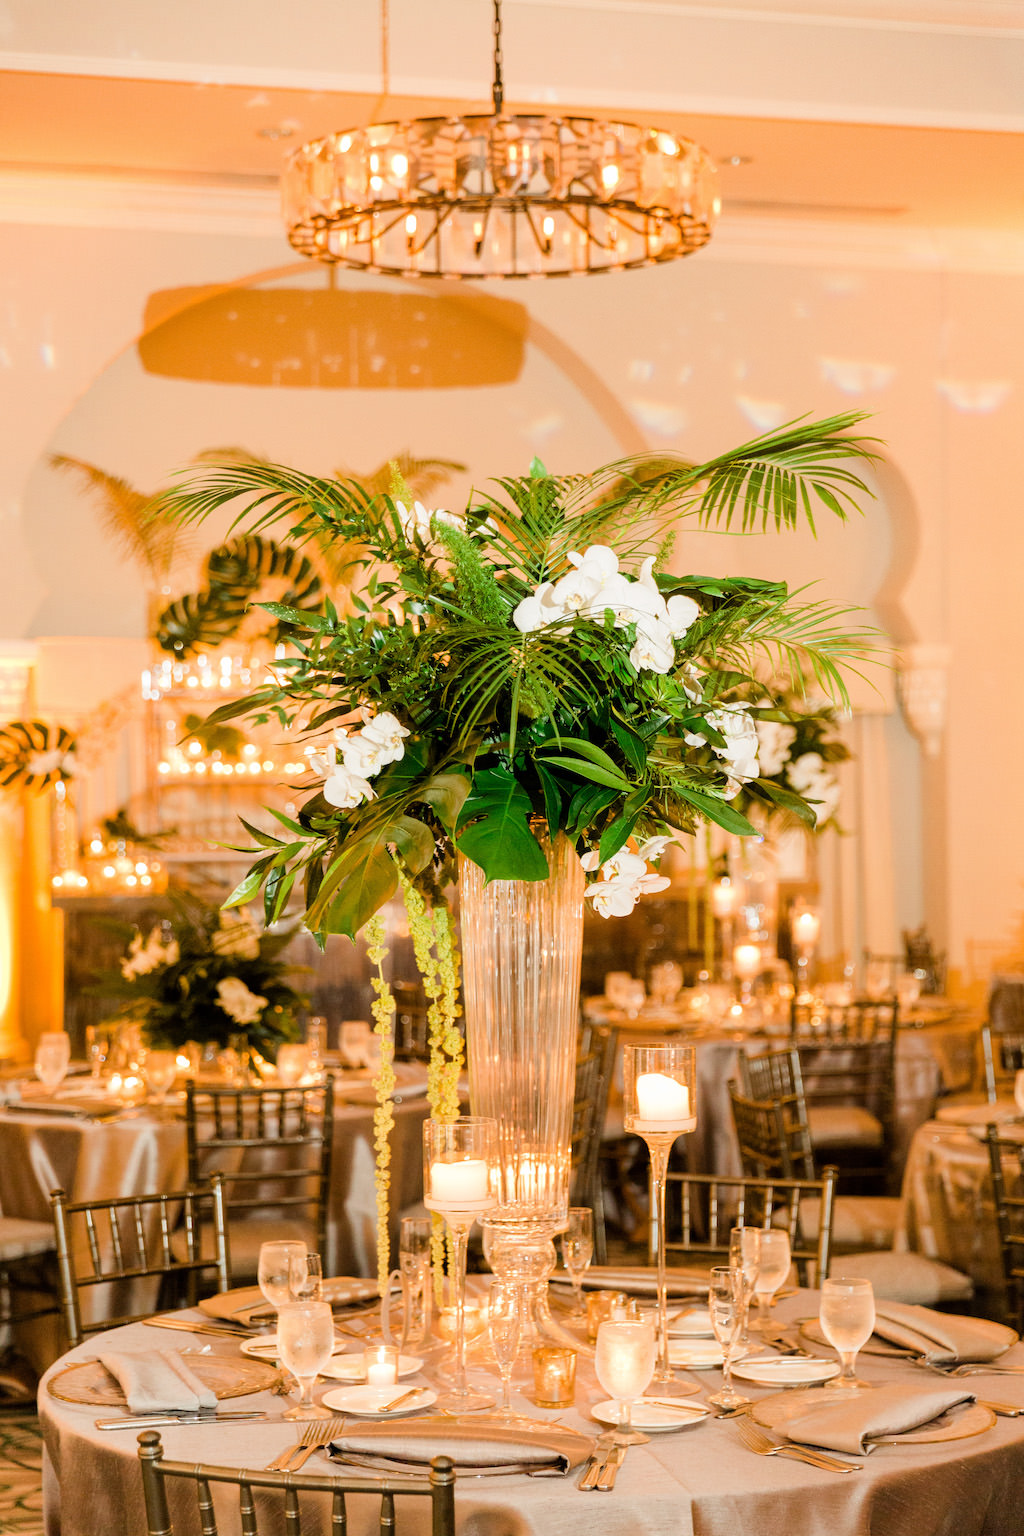 Tropical Inspired, Modern Wedding Reception Decor, Tall Centerpieces with Green Monstera Leaves, Large Palm Fronds, White Orchid Florals, Hanging Green Amaranthus, Round Tables with Silver Linens, Chiavari Chairs, Grand Ballroom of The Vinoy Renaissance St. Petersburg Resort & Golf Club | Over the Top Rental Linens | Tampa Bay Florist Bruce Wayne Florals | Florida Luxury Wedding Planner Parties A'La Carte